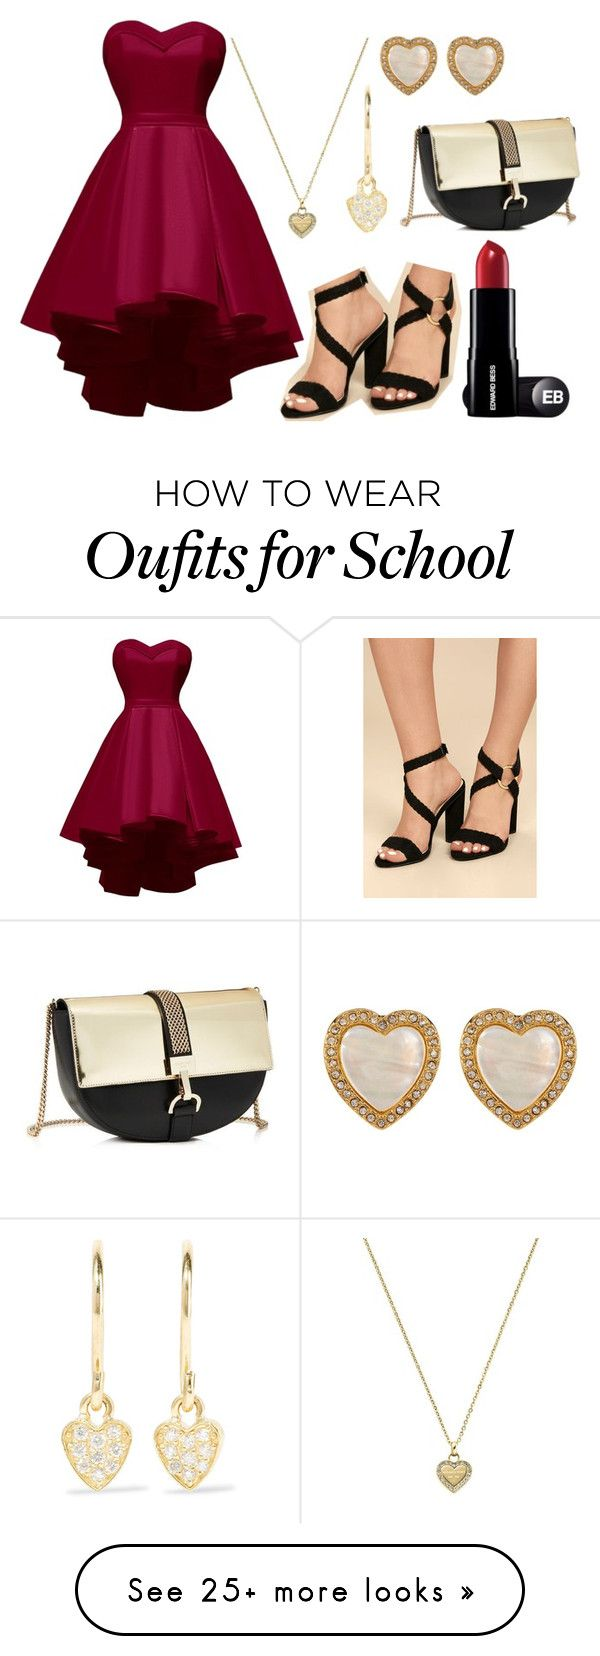 """School homecoming"" by toria-rid on Polyvore featuring Michael Kors, Jennifer Meyer Jewelry, Carolee, Liliana and Lanvin"